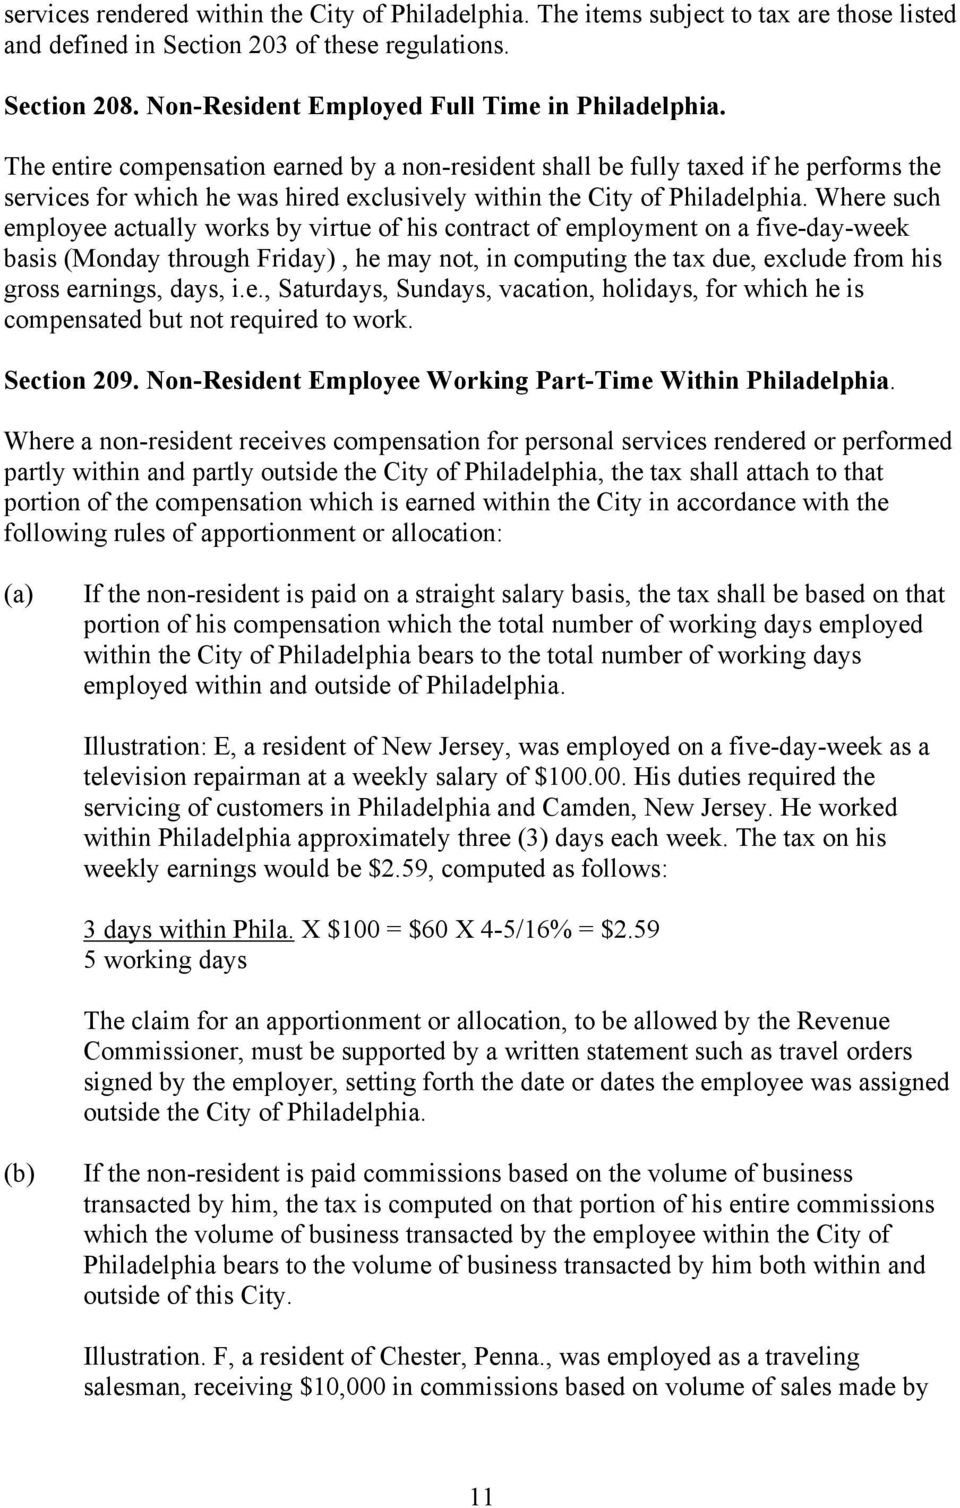 The entire compensation earned by a non-resident shall be fully taxed if he performs the services for which he was hired exclusively within the City of Philadelphia.